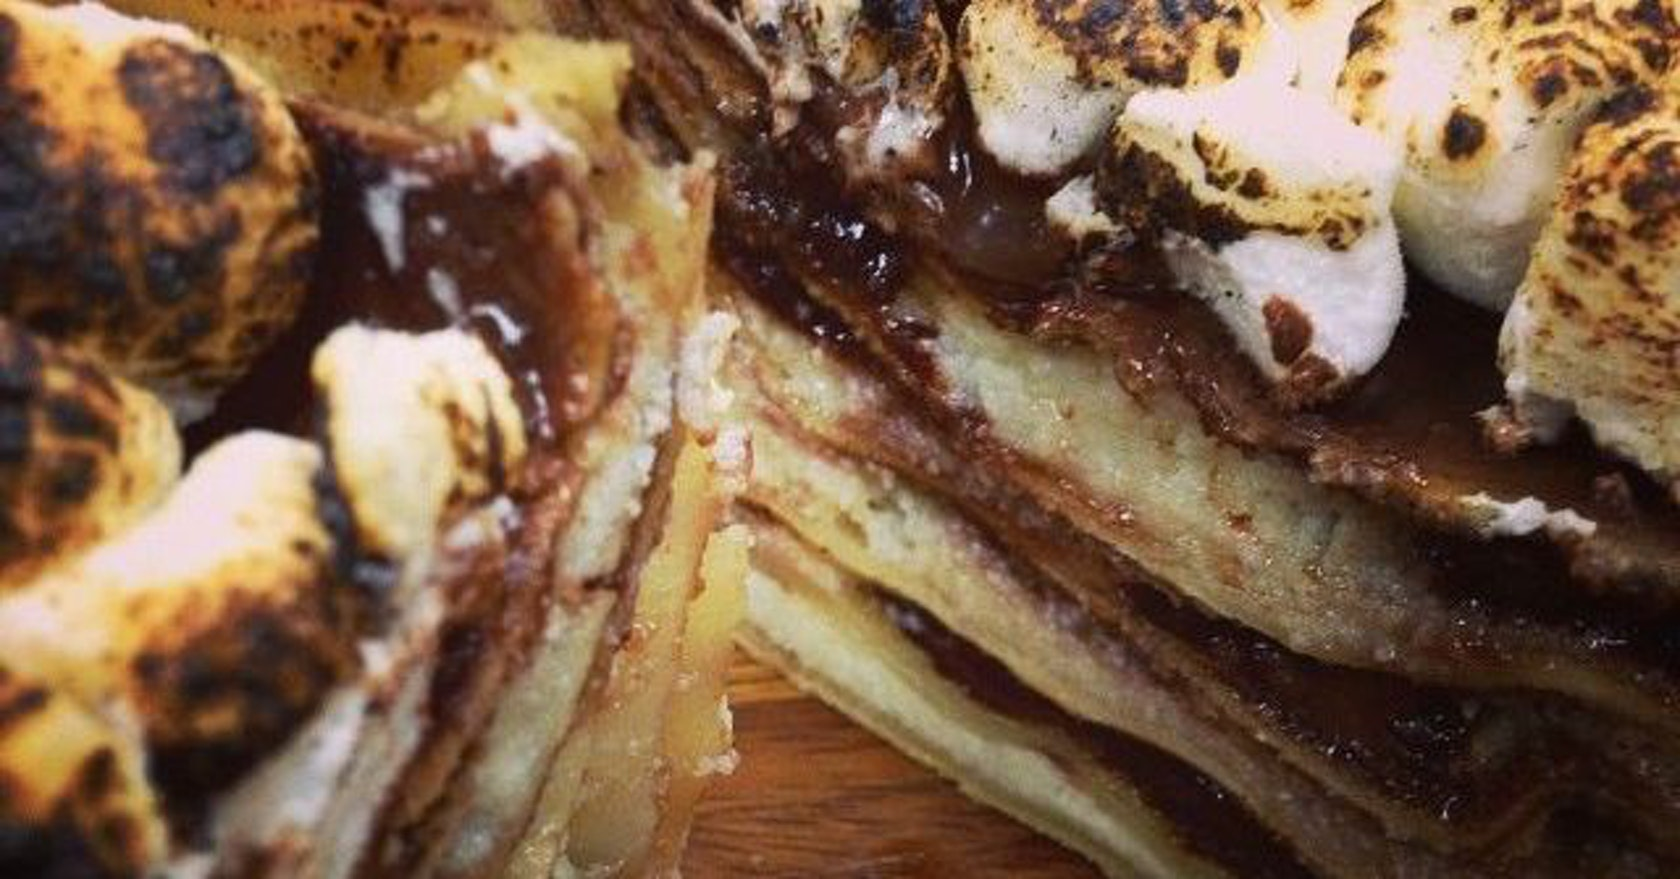 Nutelasagna; the dessert lasagna that's taking New York by storm